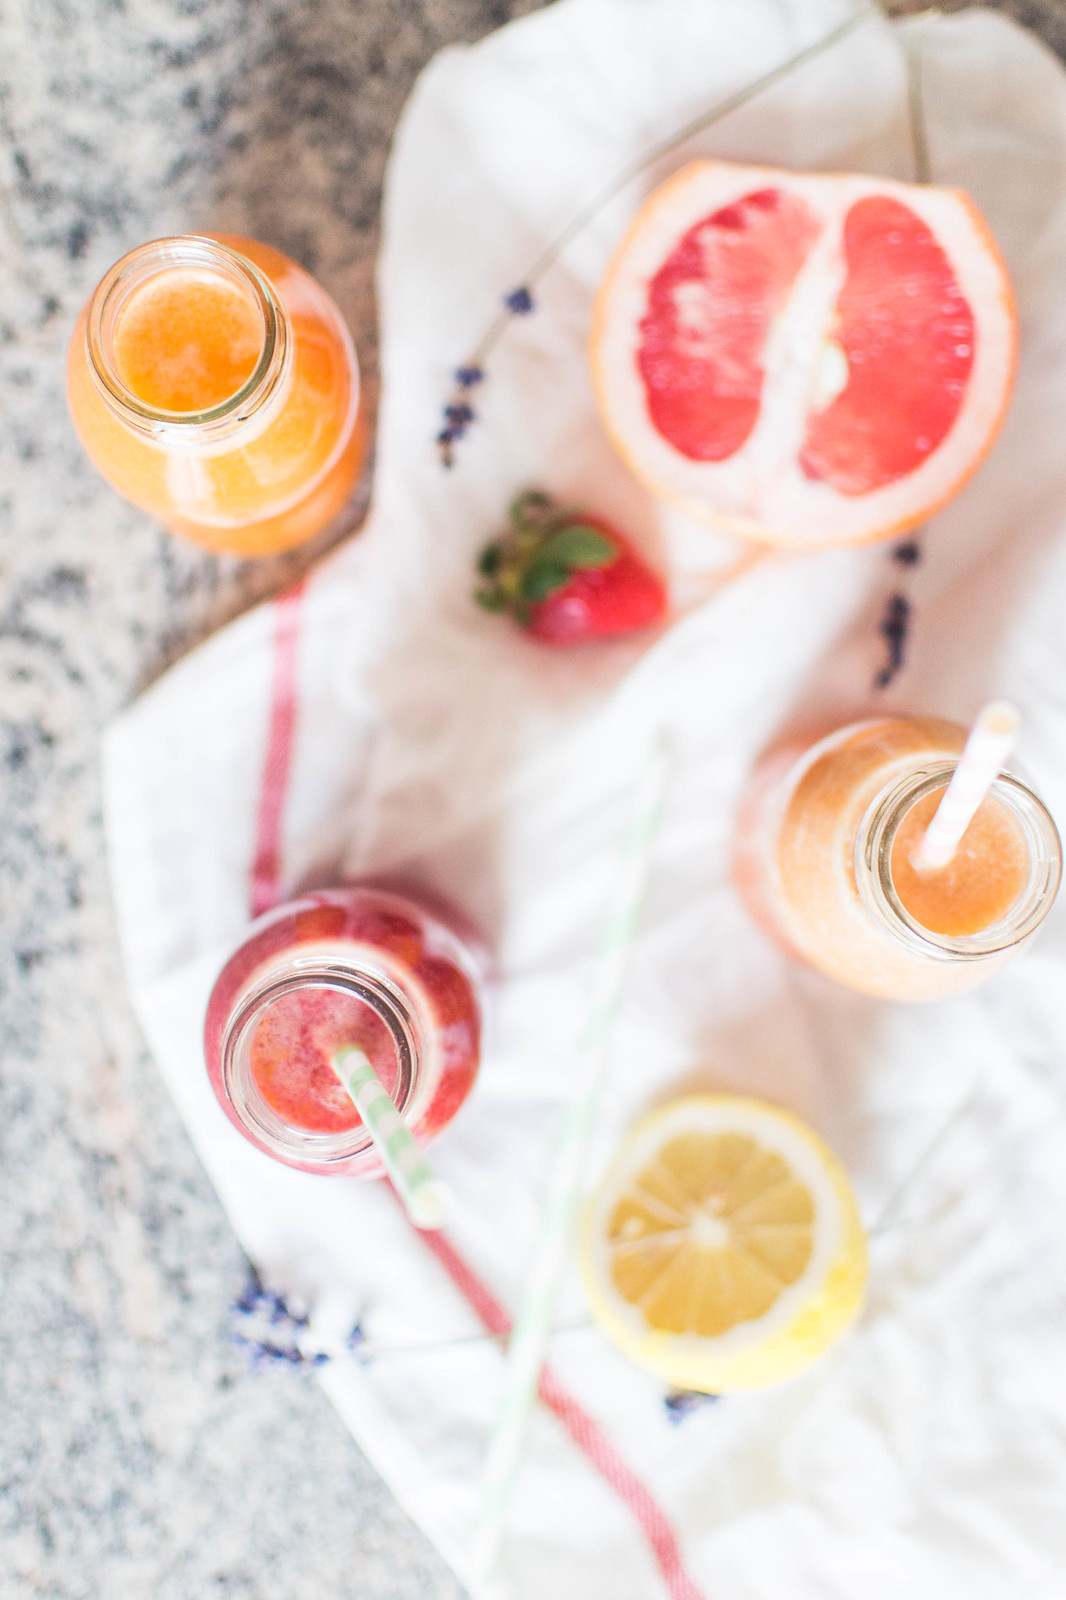 Three Healthy Juices Recipes